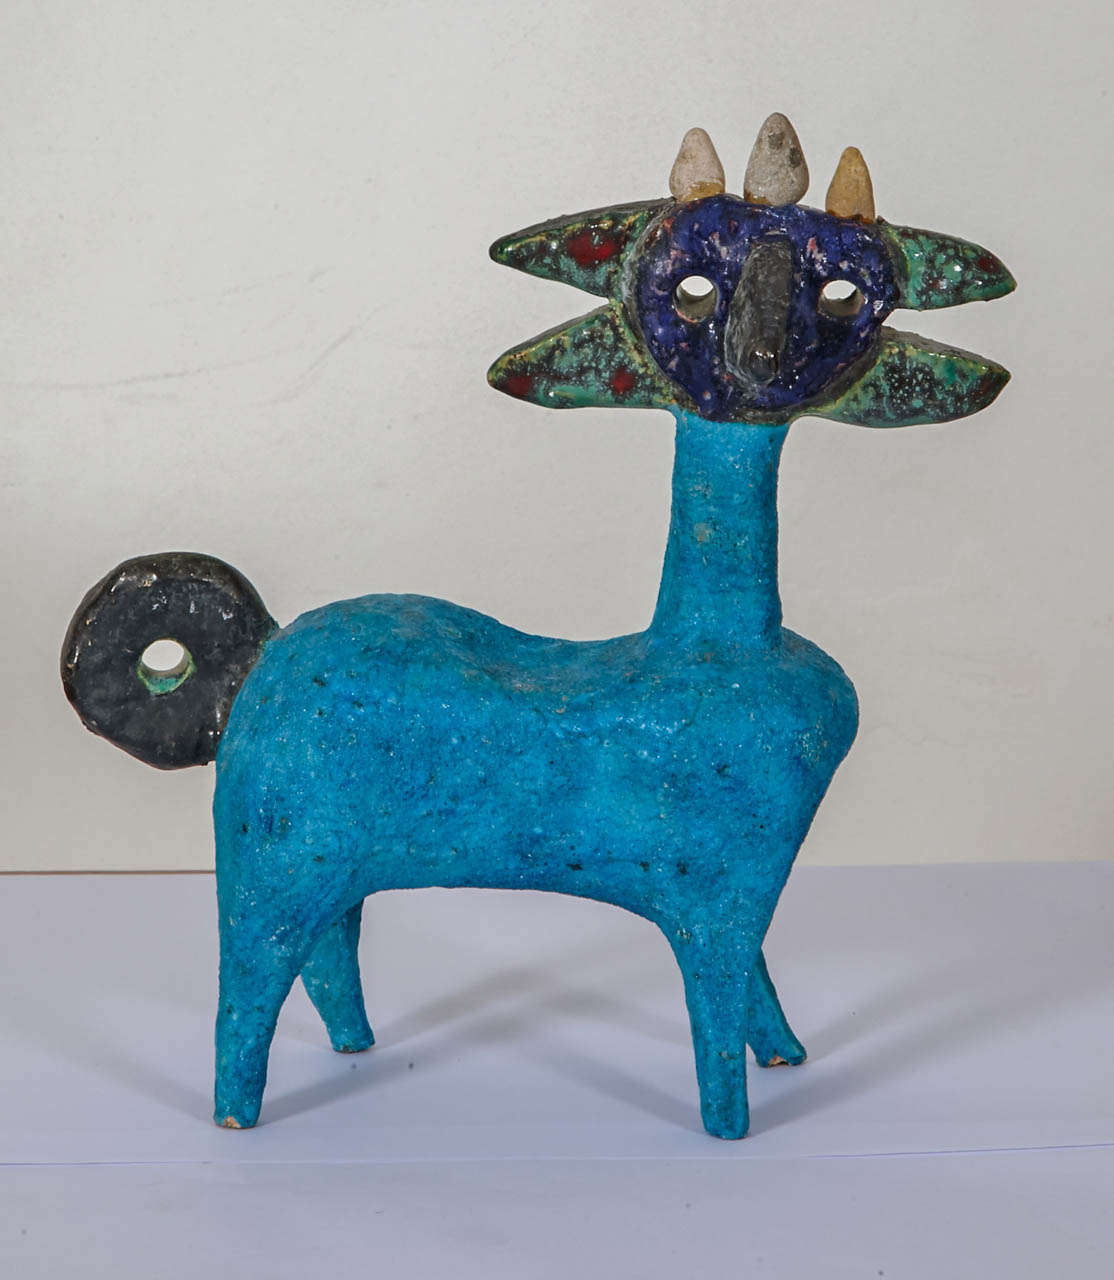 Earthenware Idol by Guidette Carbonell, circa 1960-1965 For Sale 1